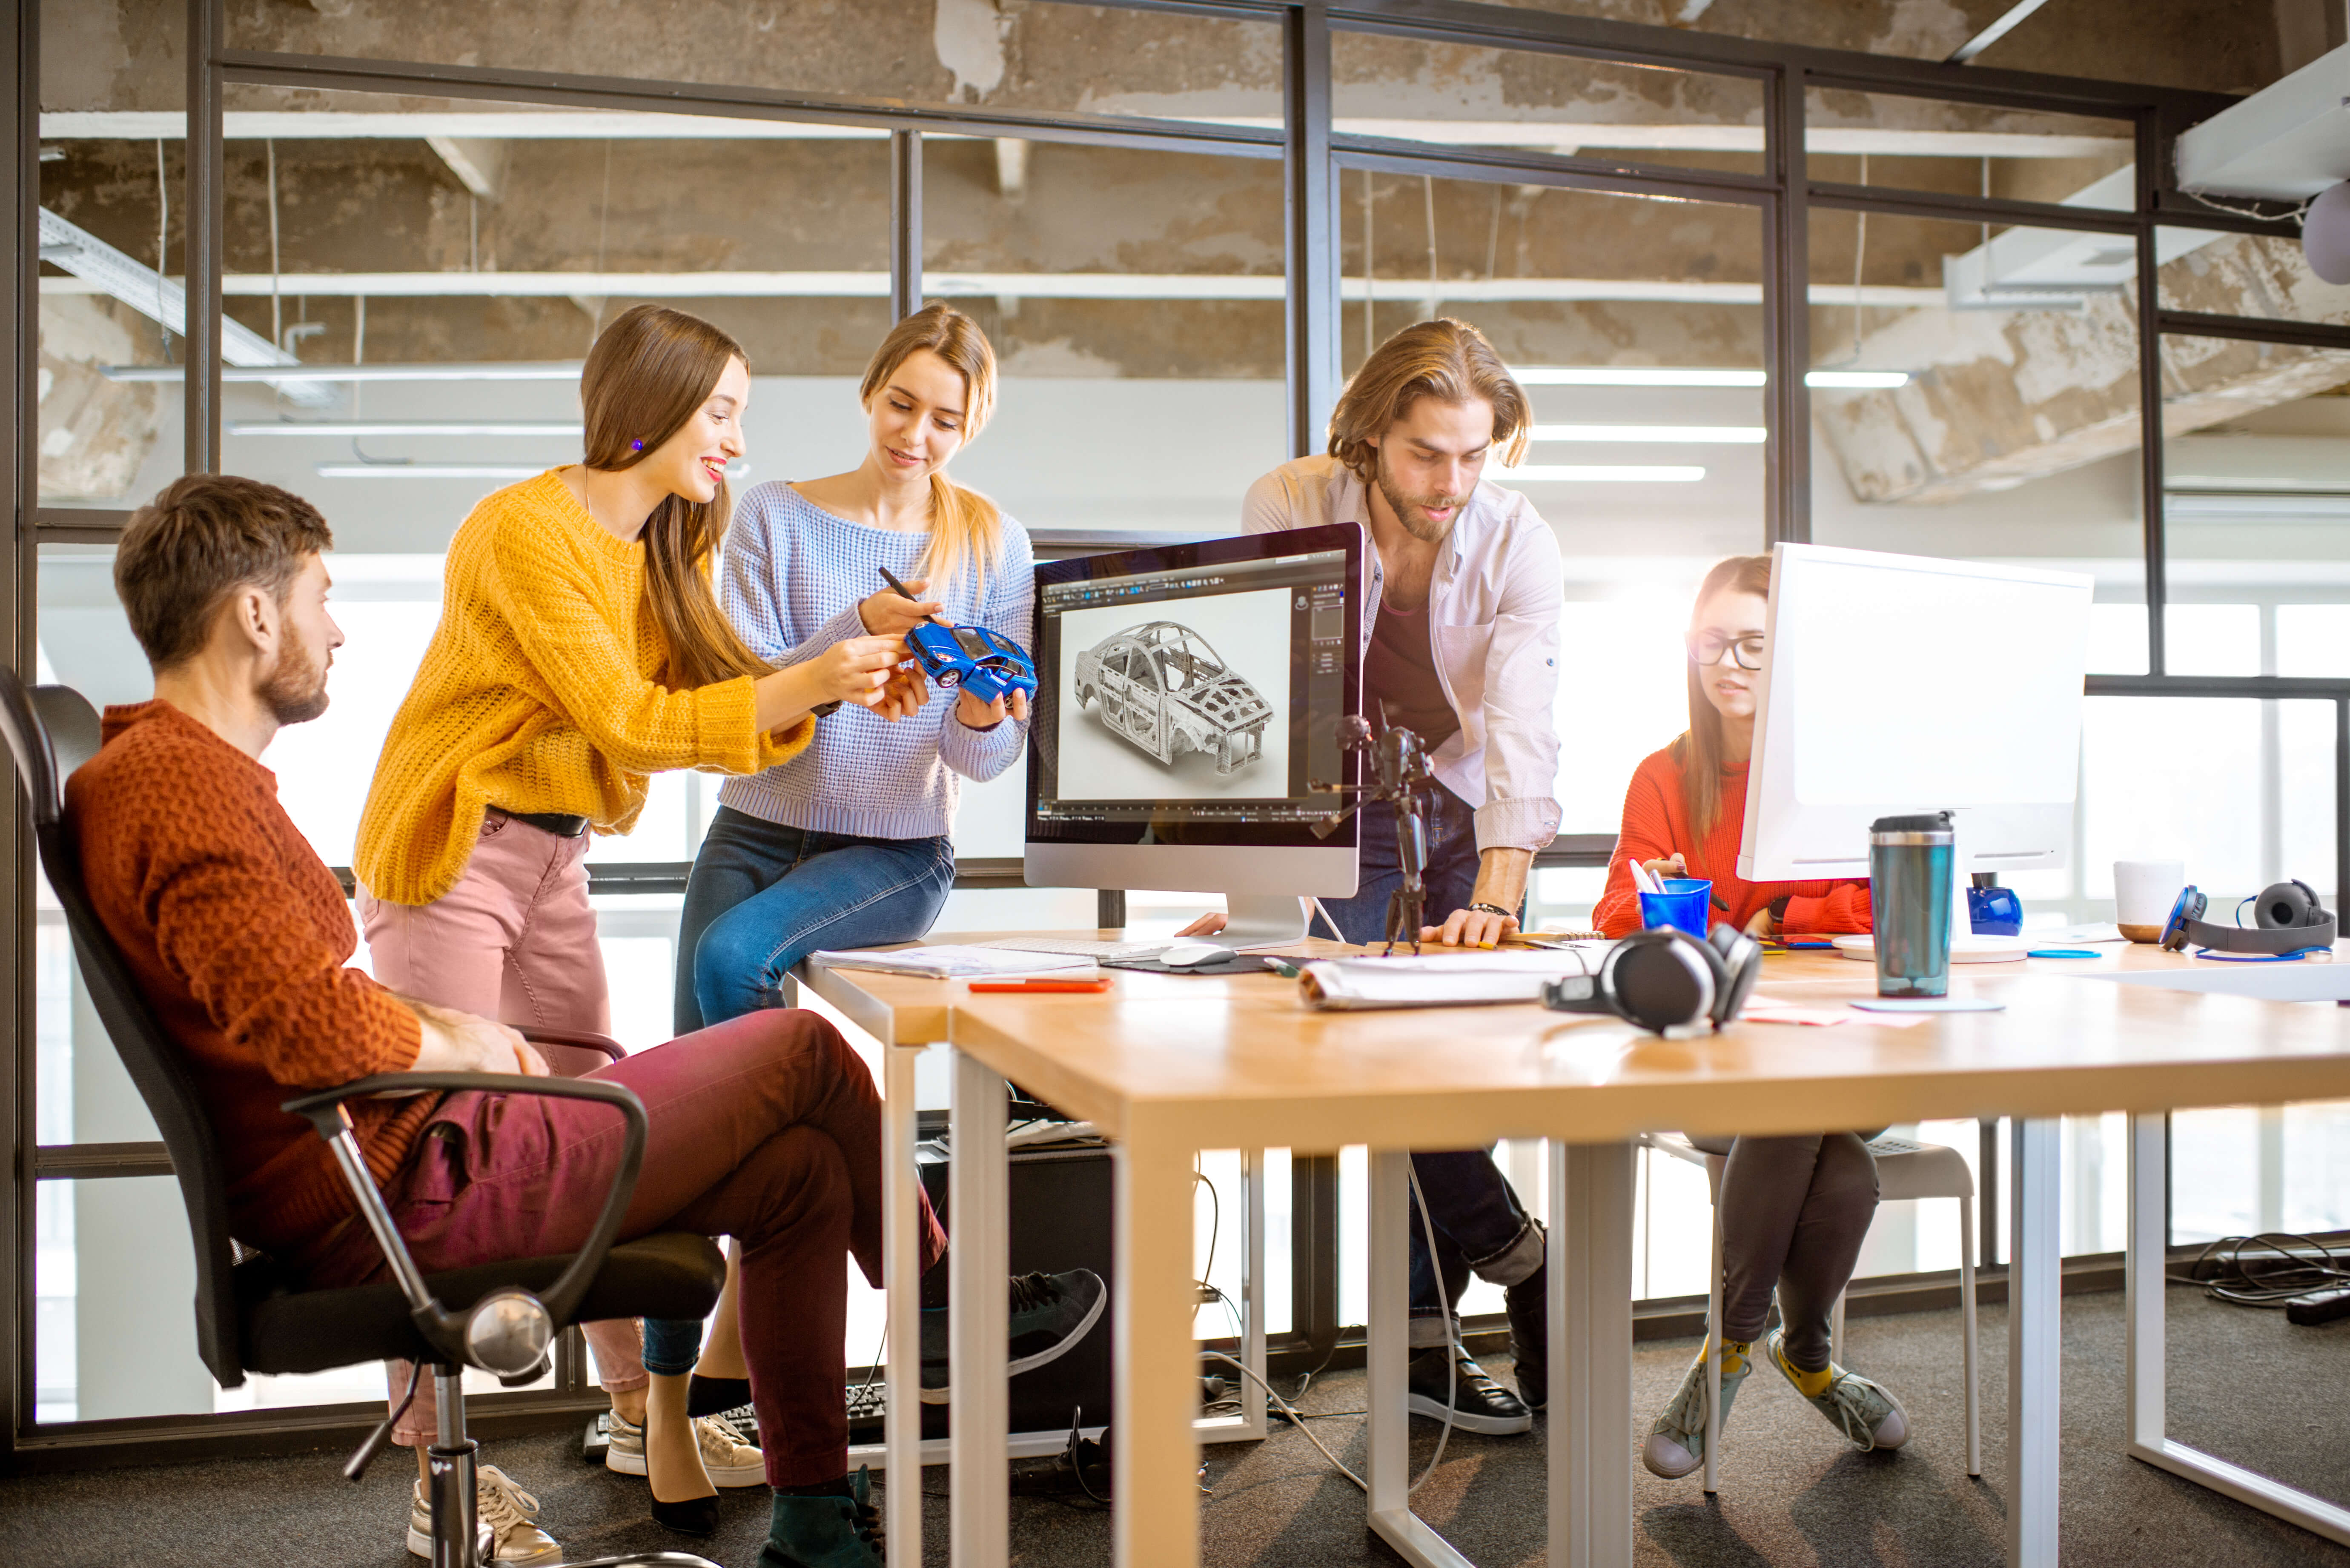 The new era of continuous change driving the Agile movement is further amplified by the use of increasingly ad-hoc tools. Source: Shutterstock